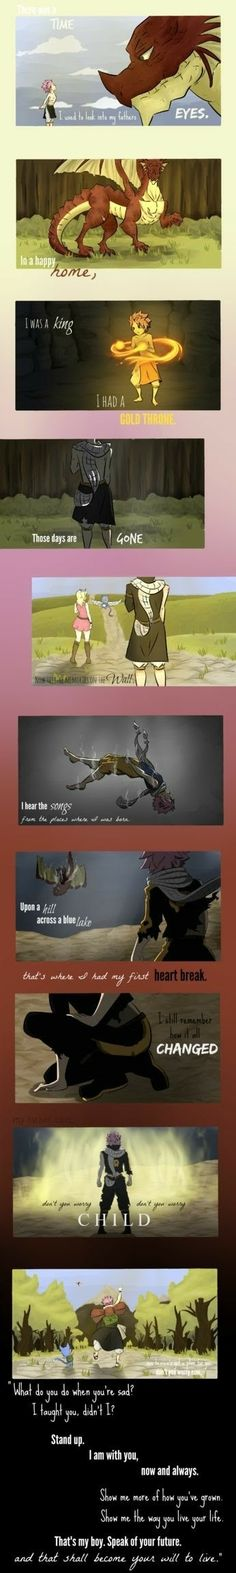 Song: Don't you worry child Anime: Fairy Tail Fairy Tail Sad, Fairy Tail Meme, Fairy Tail Quotes, Image Fairy Tail, Fairy Tail Comics, Natsu Fairy Tail, Fairy Tail Family, Fairy Tail Couples, Fairy Tail Ships